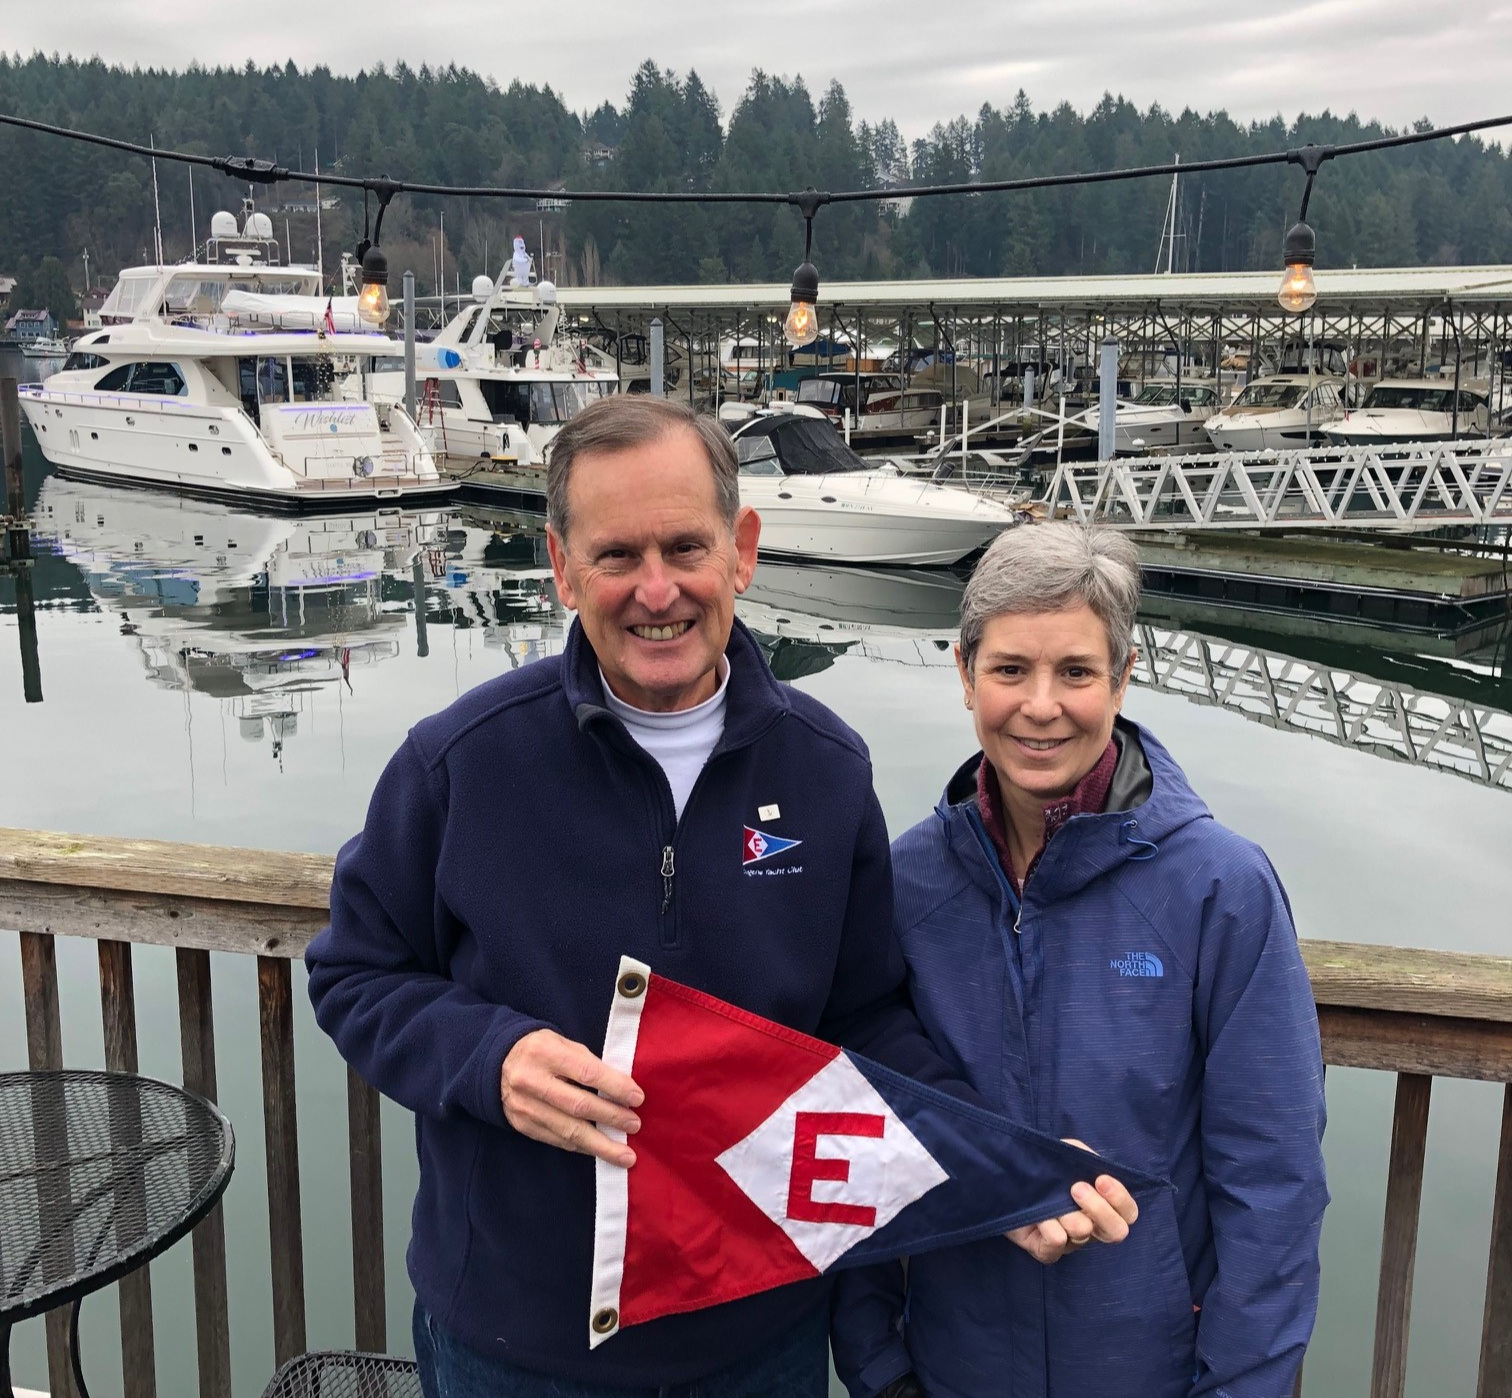 Gary & Jane Powell in Gig Harbor, WA